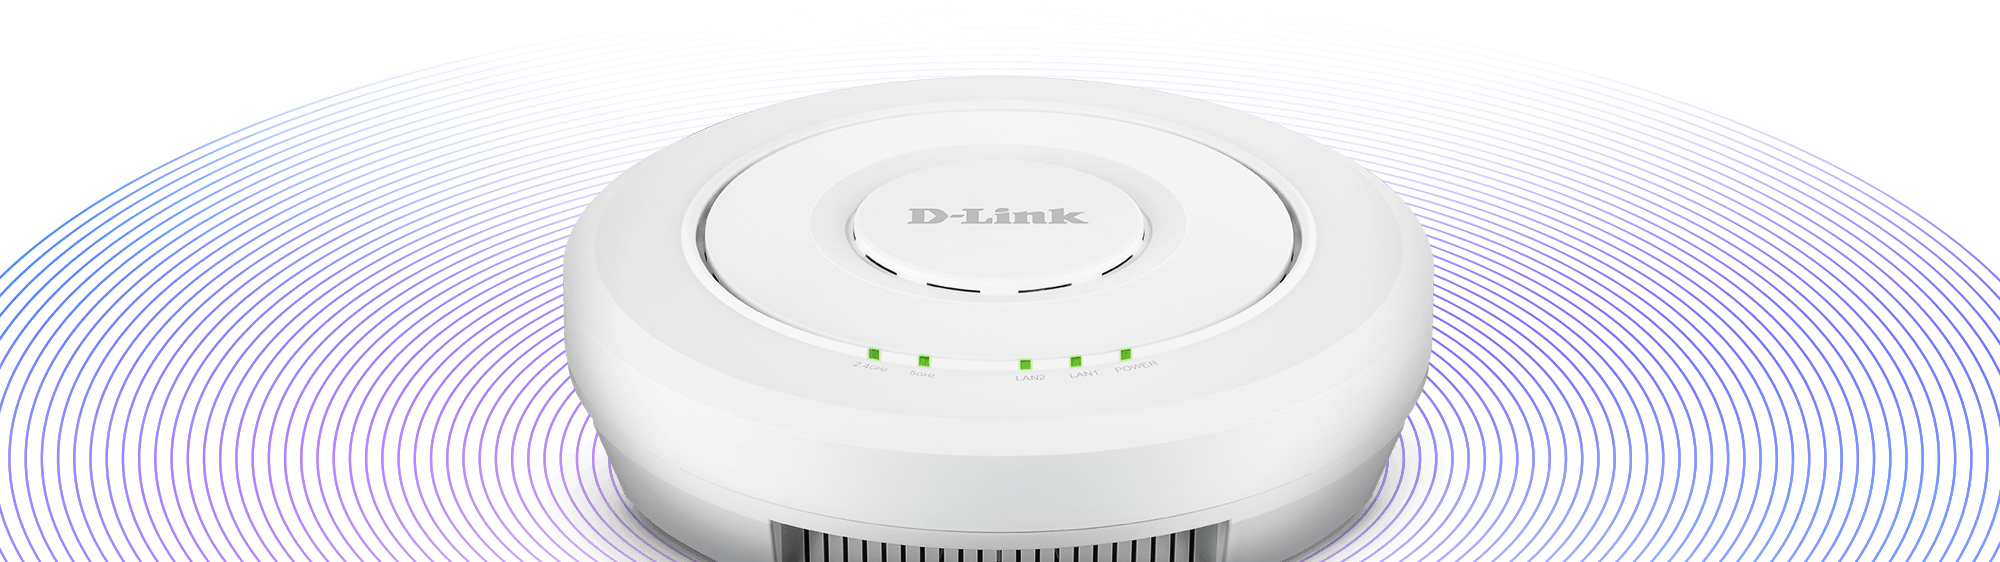 Wireless waves from the DWL-6620APS Wireless AC1300 Wave 2 Unified Access Point with Smart Antenna